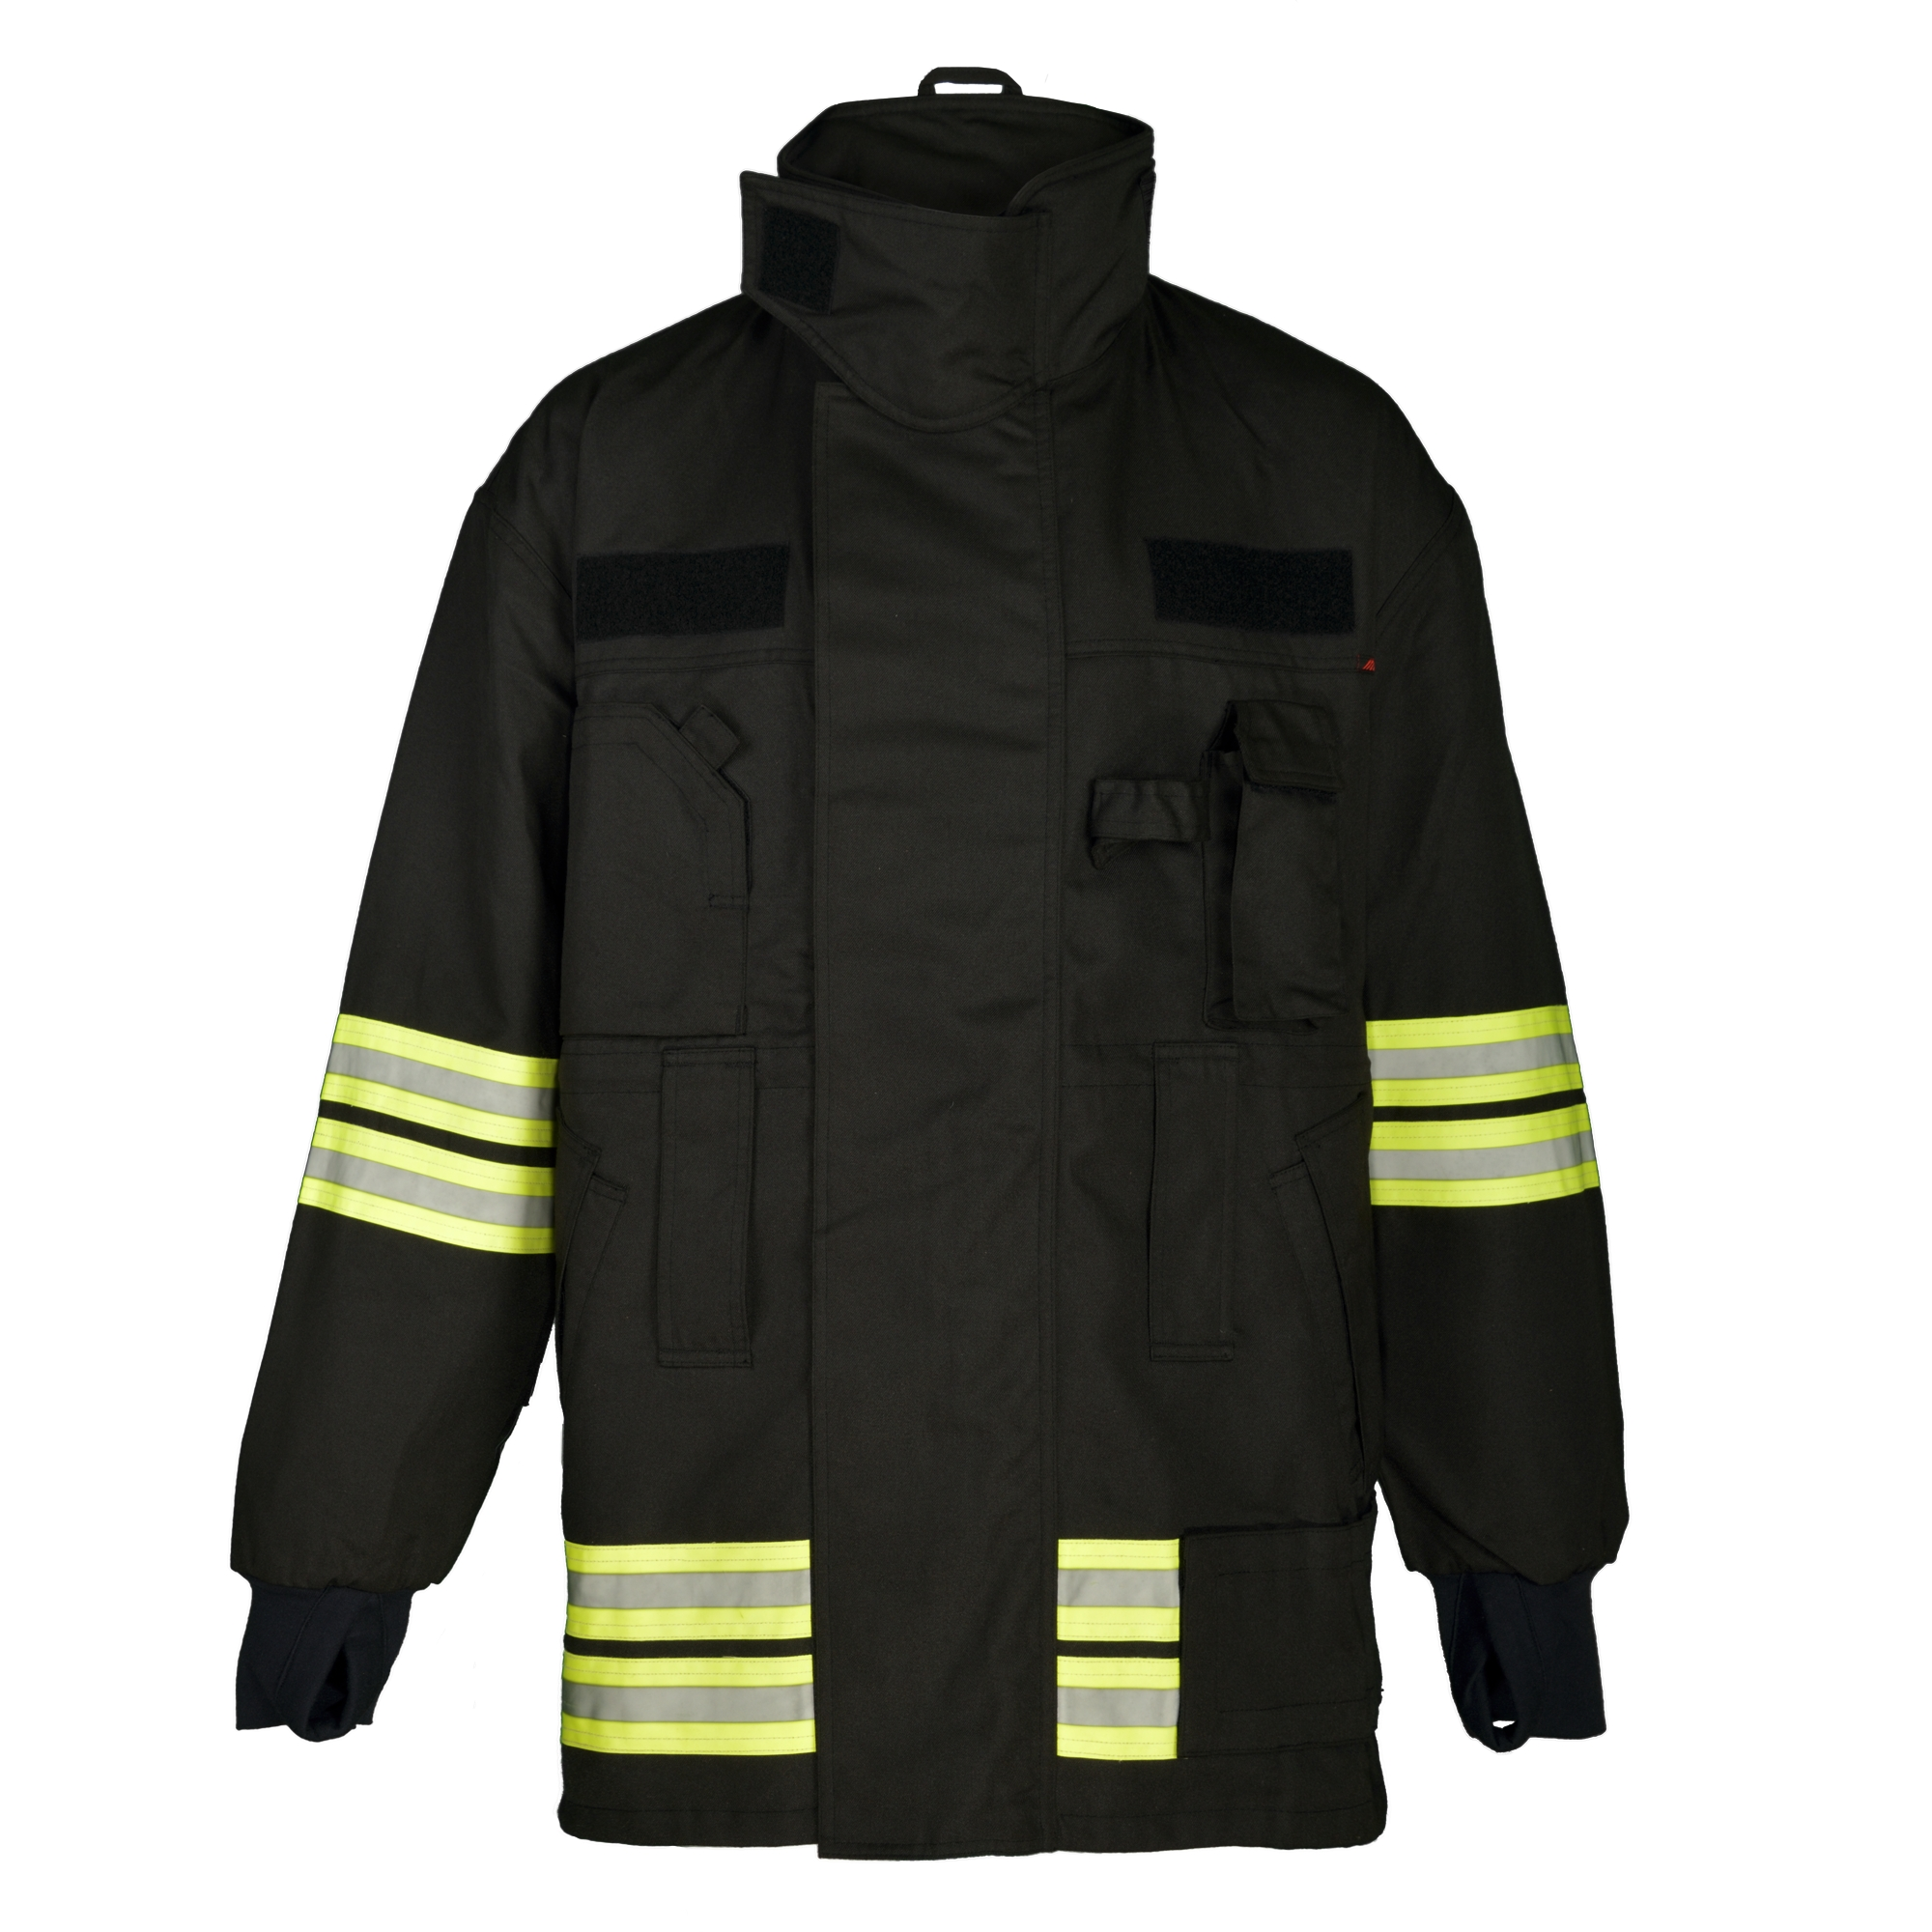 Firefighters special uniform two – pieces